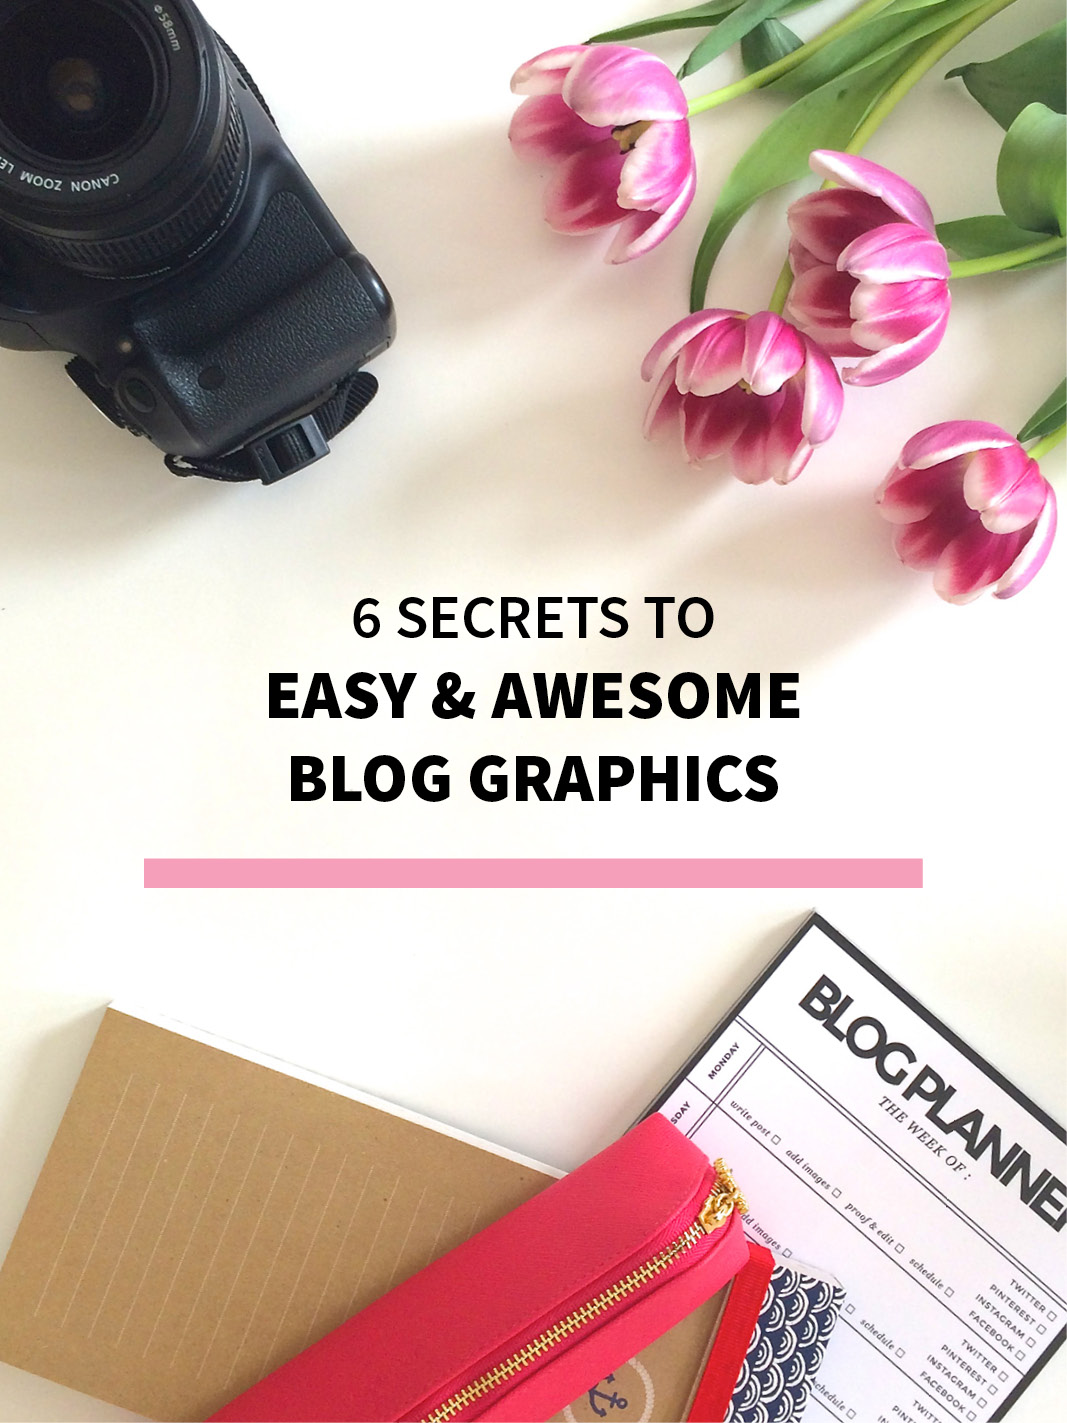 6 Secrets for Easy & Awesome Blog Graphics